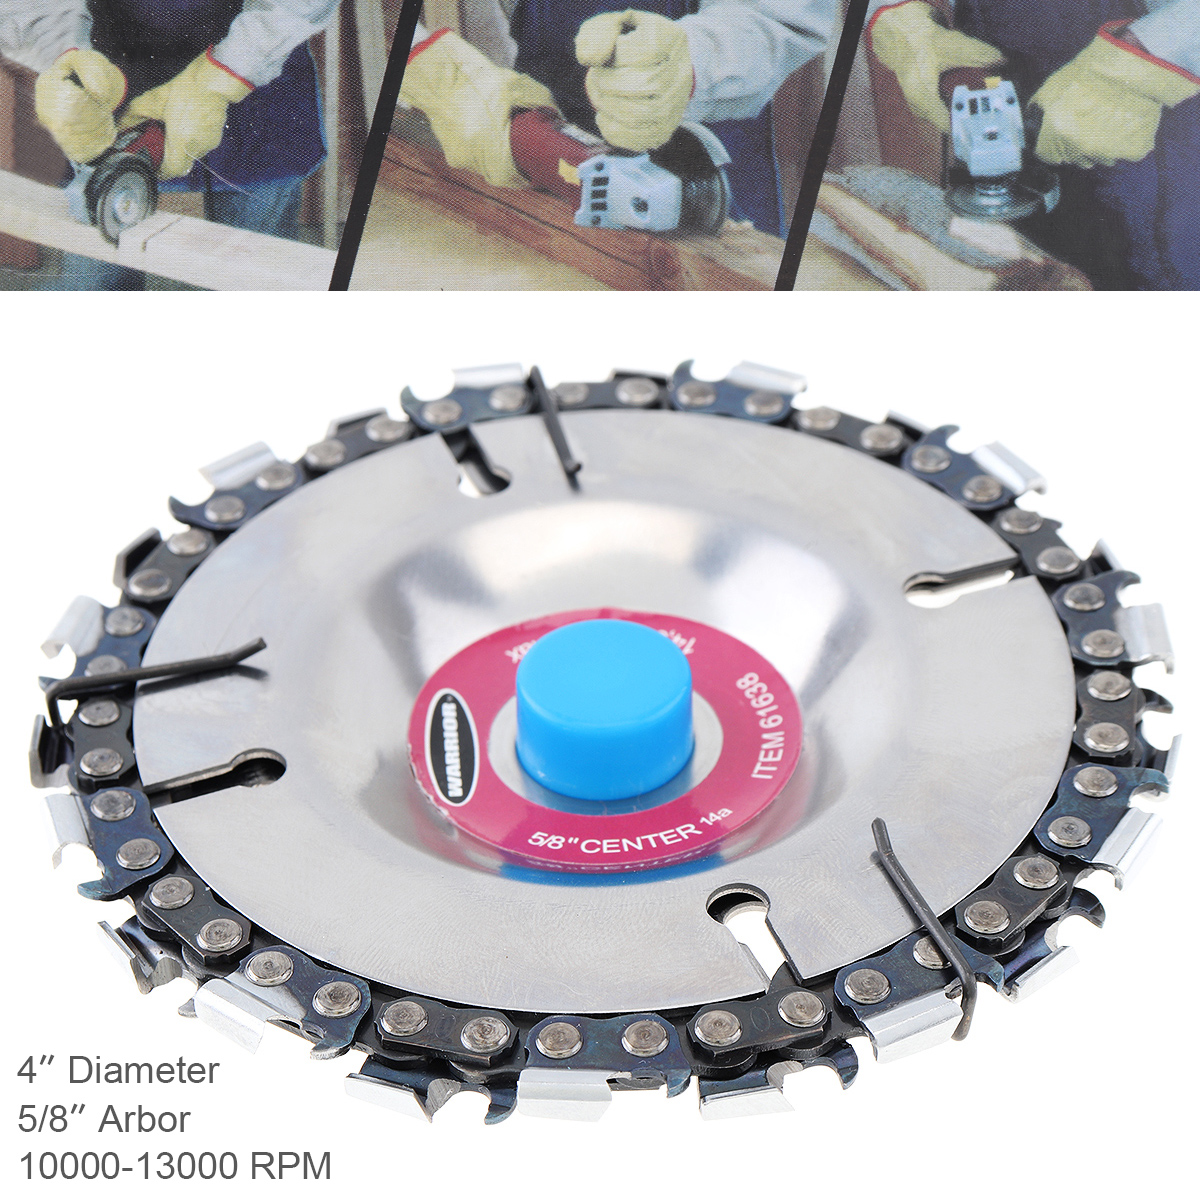 4 Inch 22 Tooth Durable Angle Grinder Disc Wood Cutting Grooved Saw Blade Grinder Chain Disk Woodworking Sculpting Tool